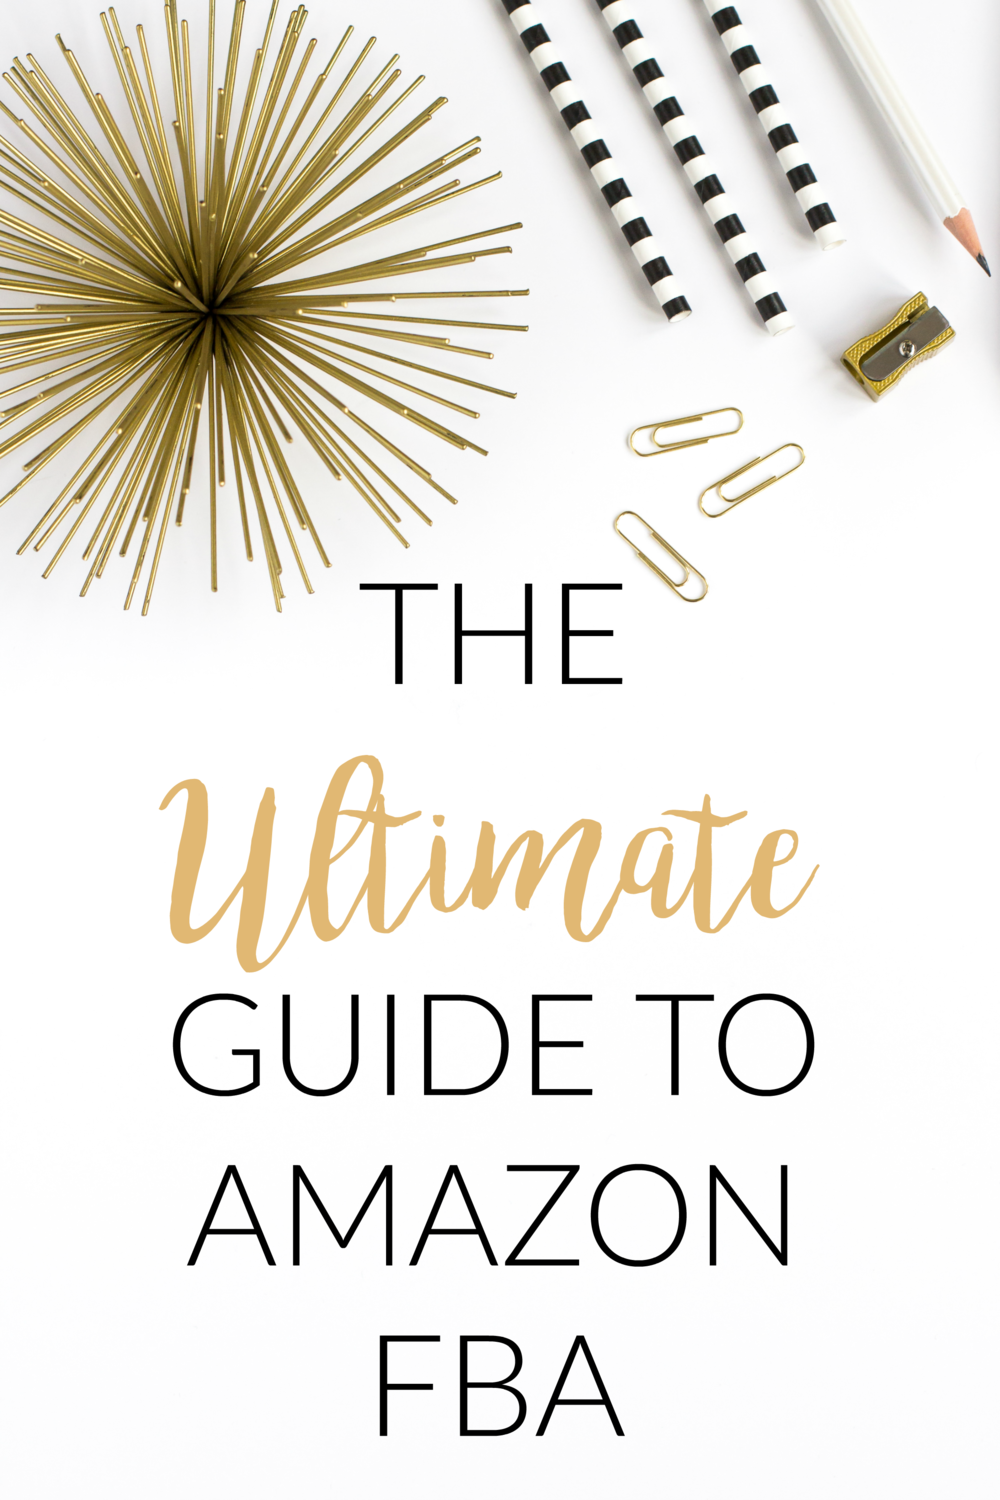 The Ultimate Guide To Amazon FBA. How to create a profitable business from home selling on Amazon FBA.